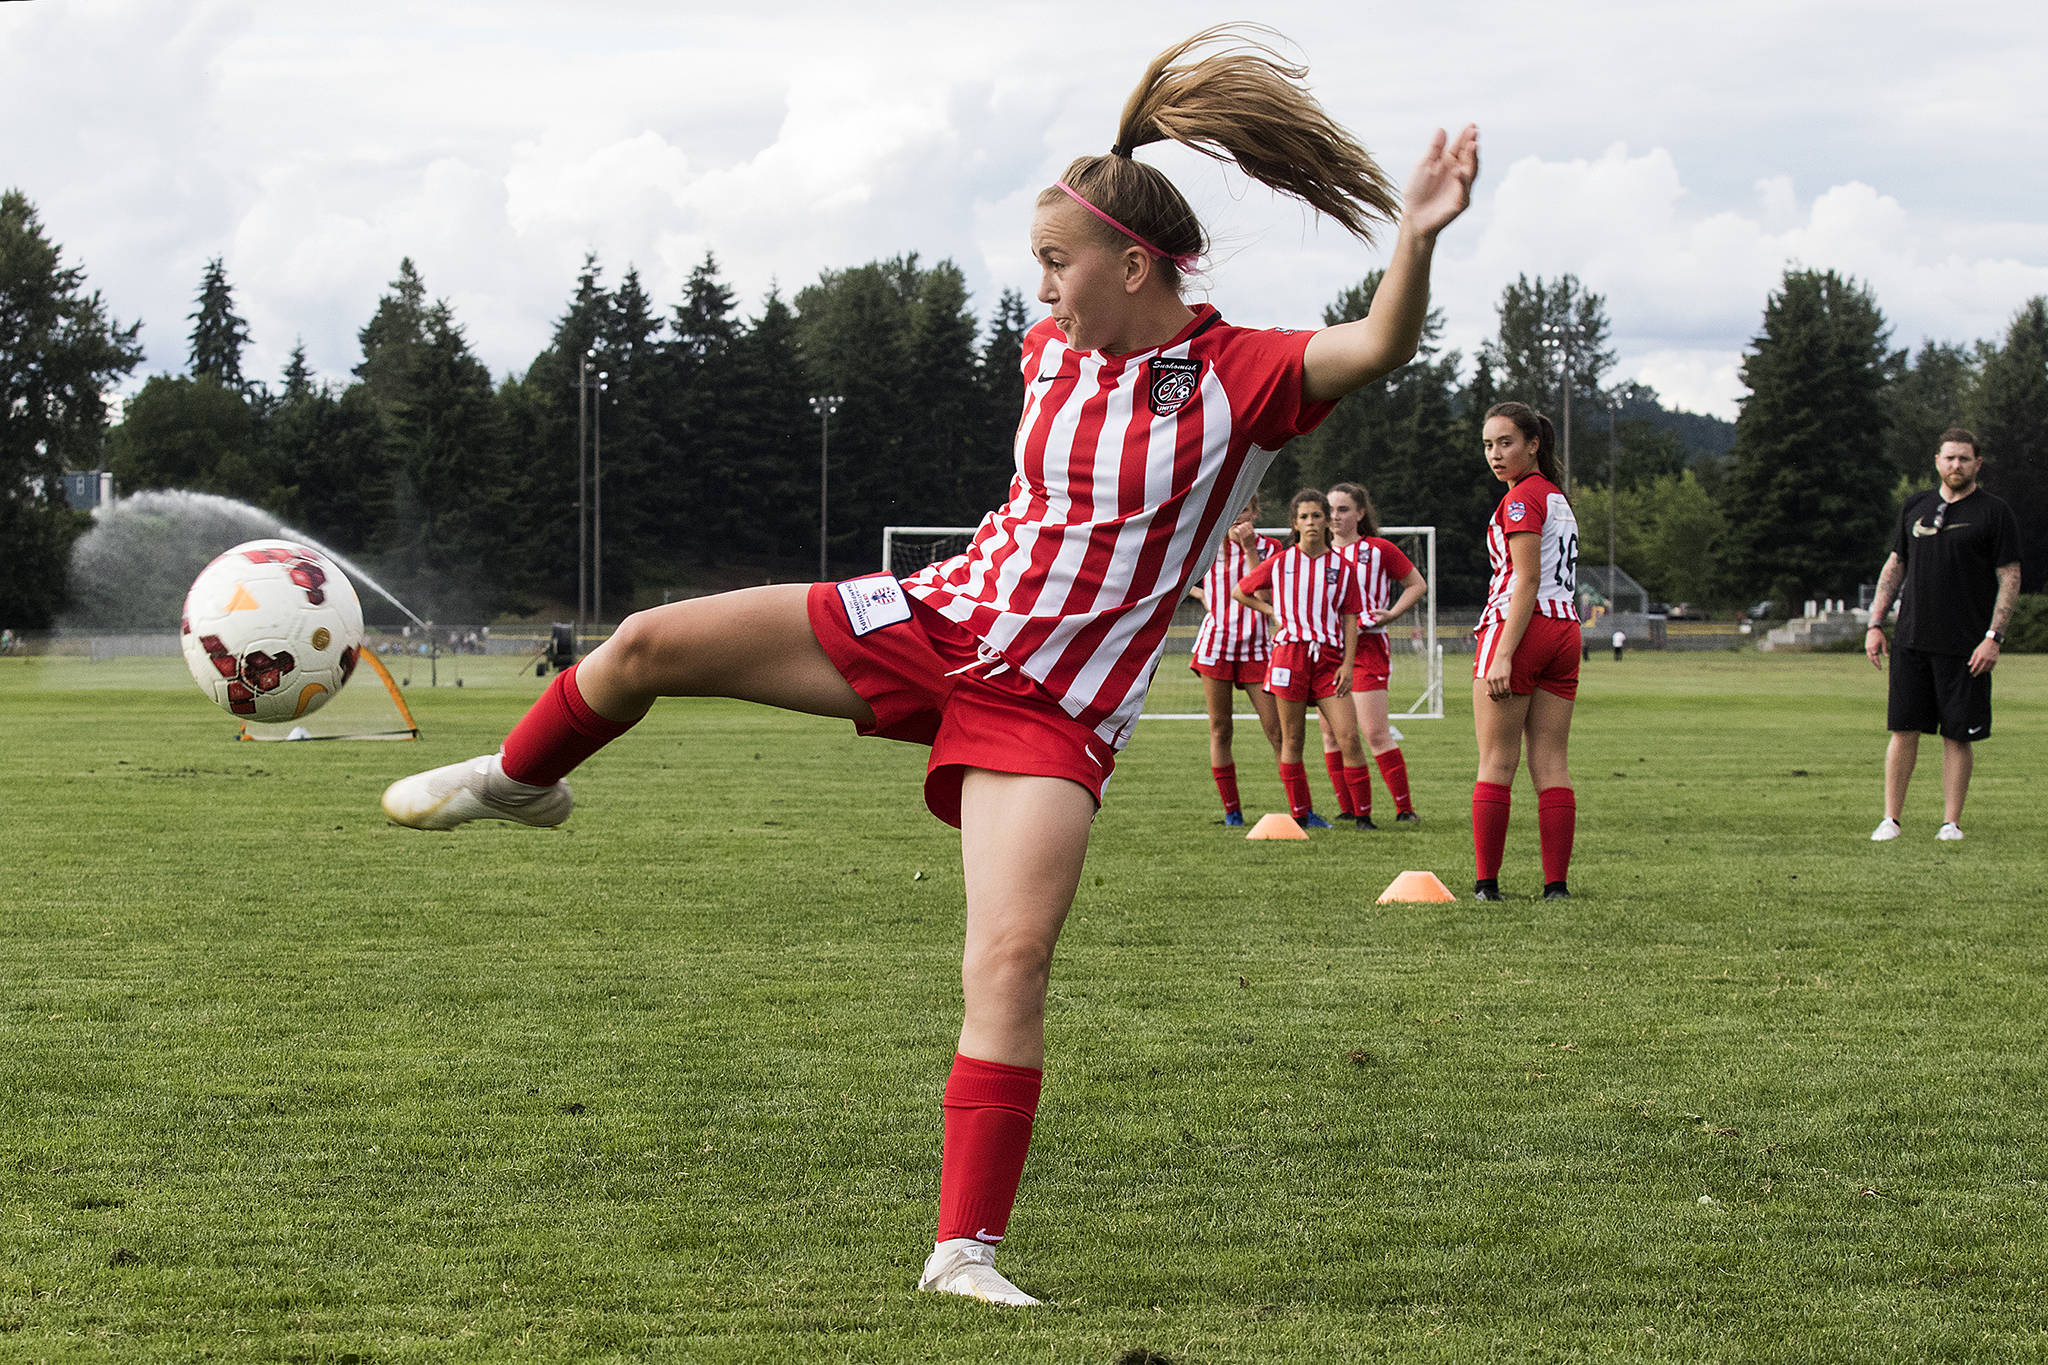 Snohomish United 05's Kenzie Thompson-Sheldon tries a side kick toward the goal during practice at Stocker Fields July 11 in Snohomish. (Andy Bronson / The Herald)